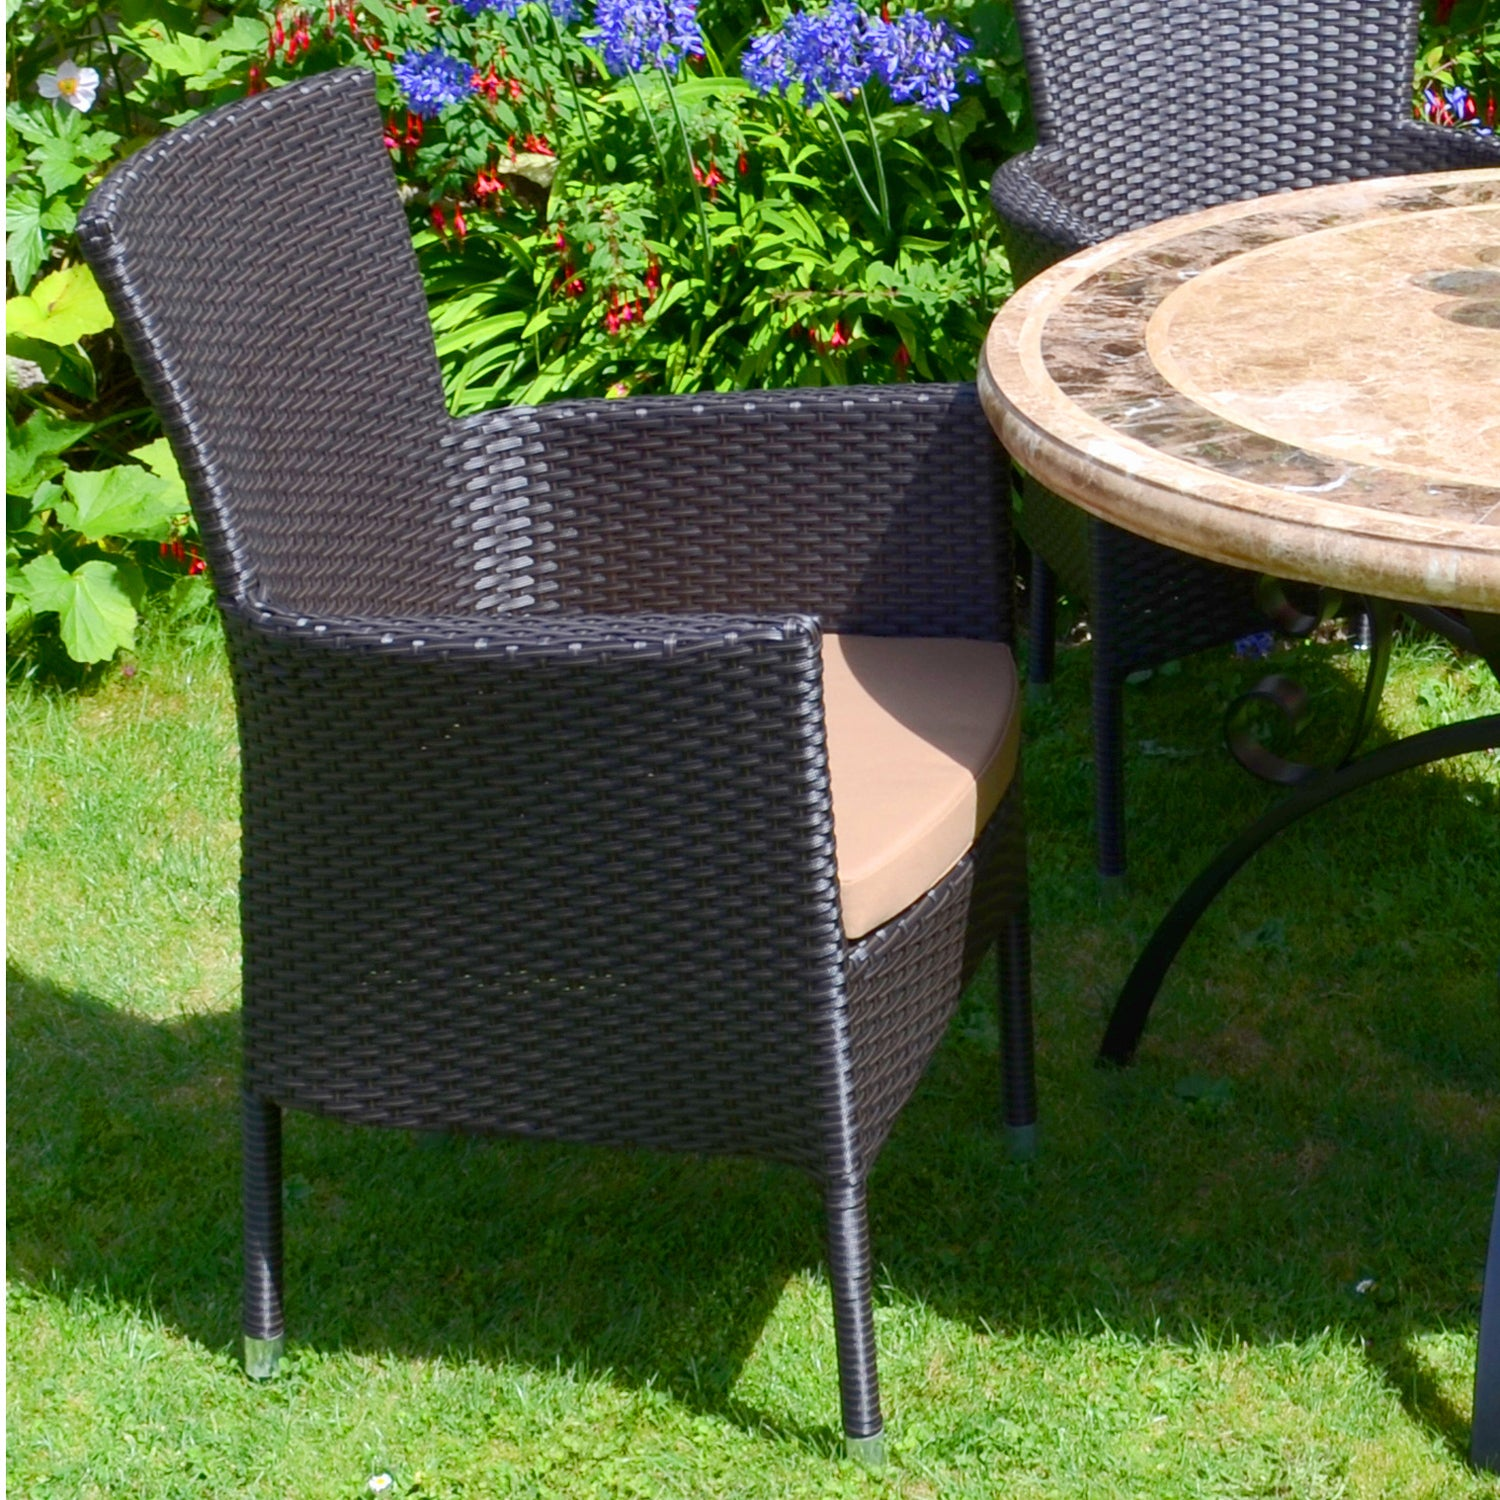 Europa Leisure Stockholm Outdoor Chair Brown Pack Of 2 - Ruby's Garden Boutique